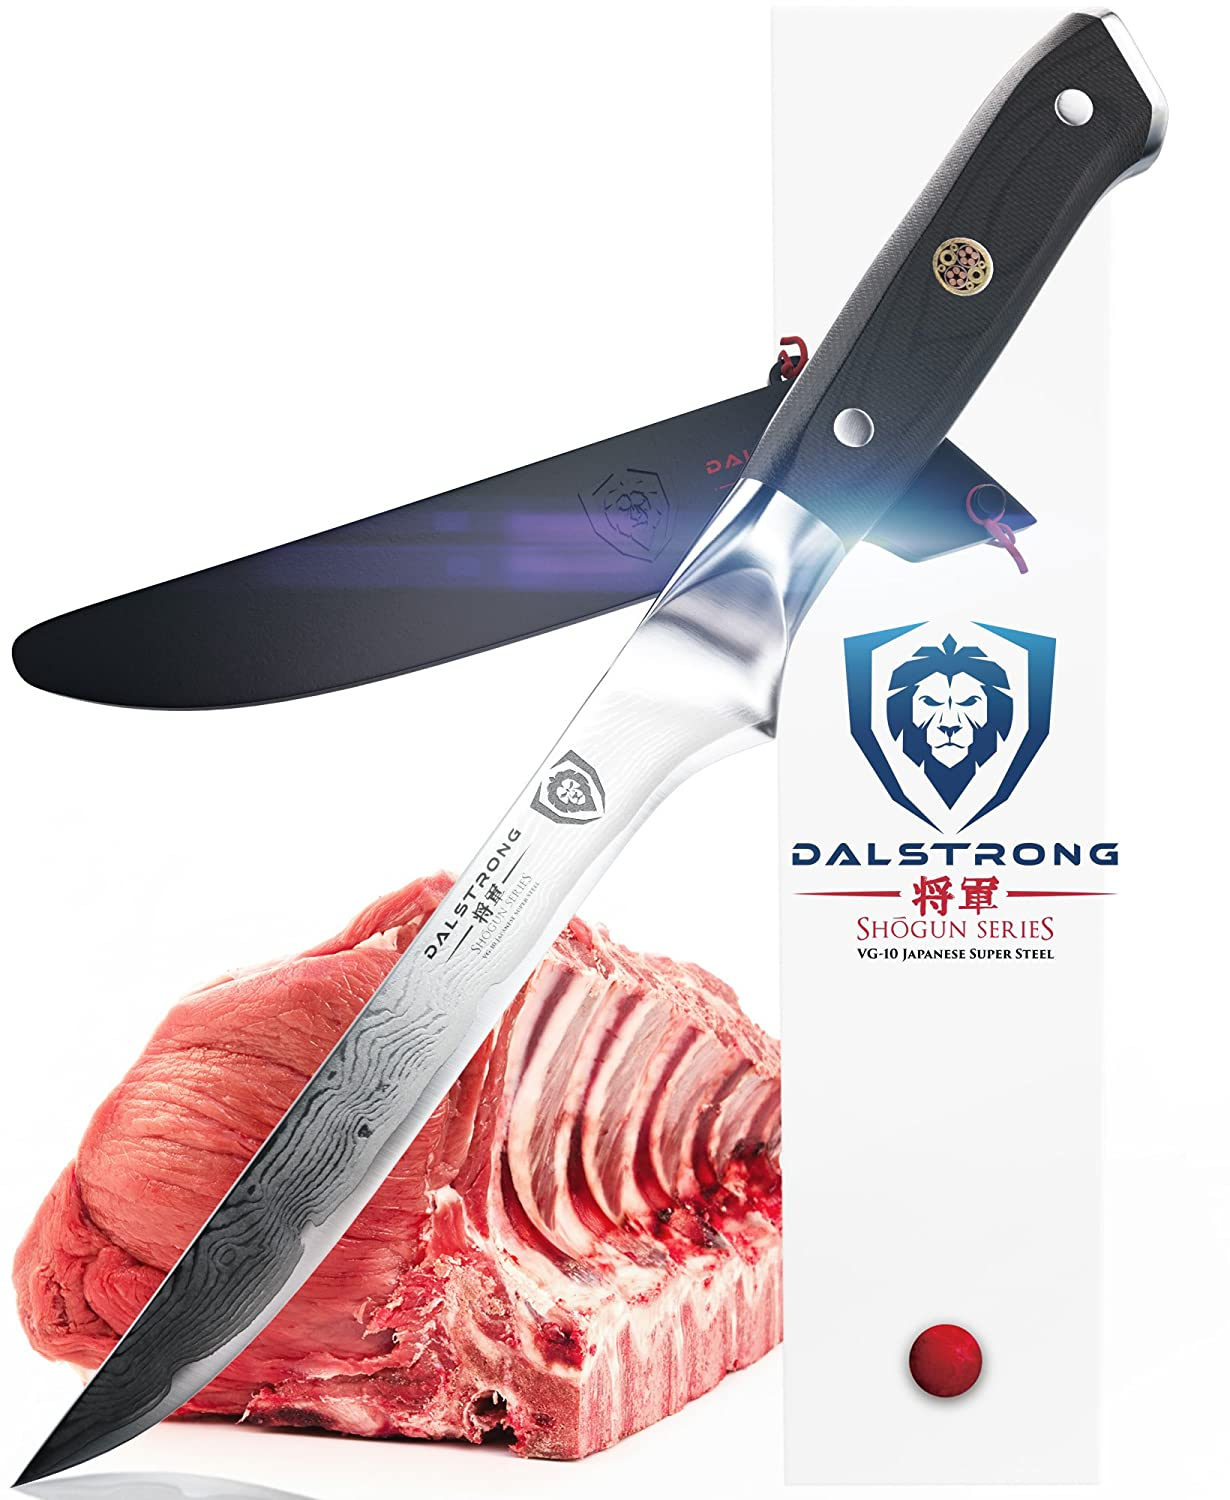 Best Butcher Knives Reviews 2019: Top 5+ Recommended 4 #cookymom